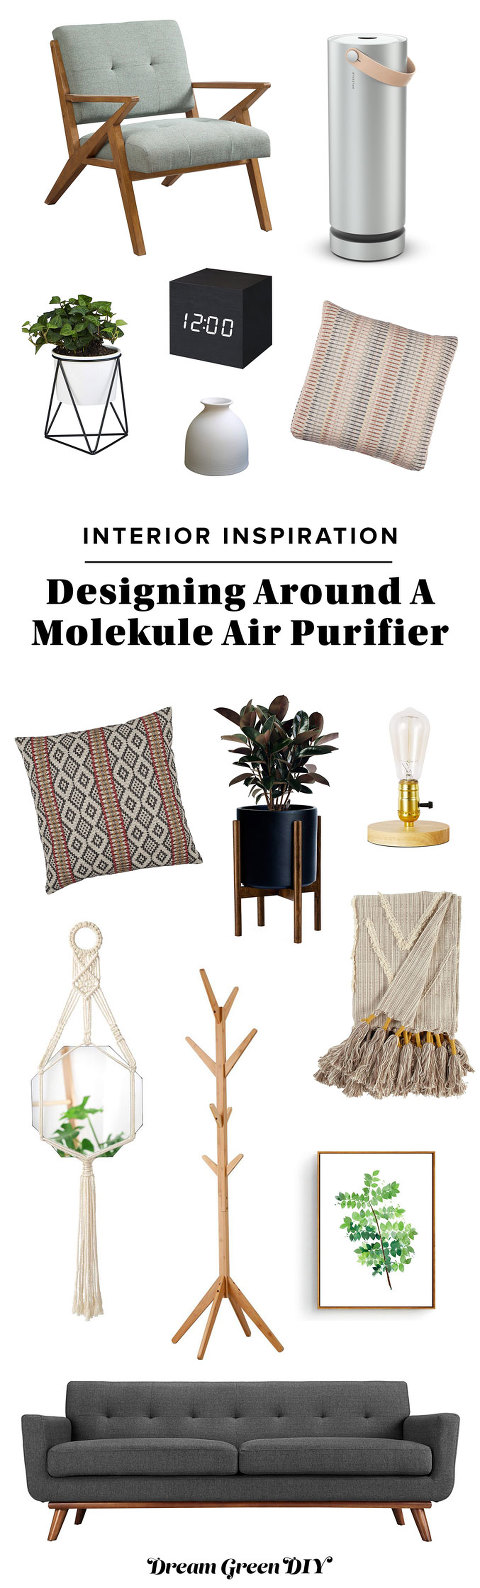 Designing Around A Molekule Air Purifier | dreamgreendiy.com + @Molekule #ad #mymolekule